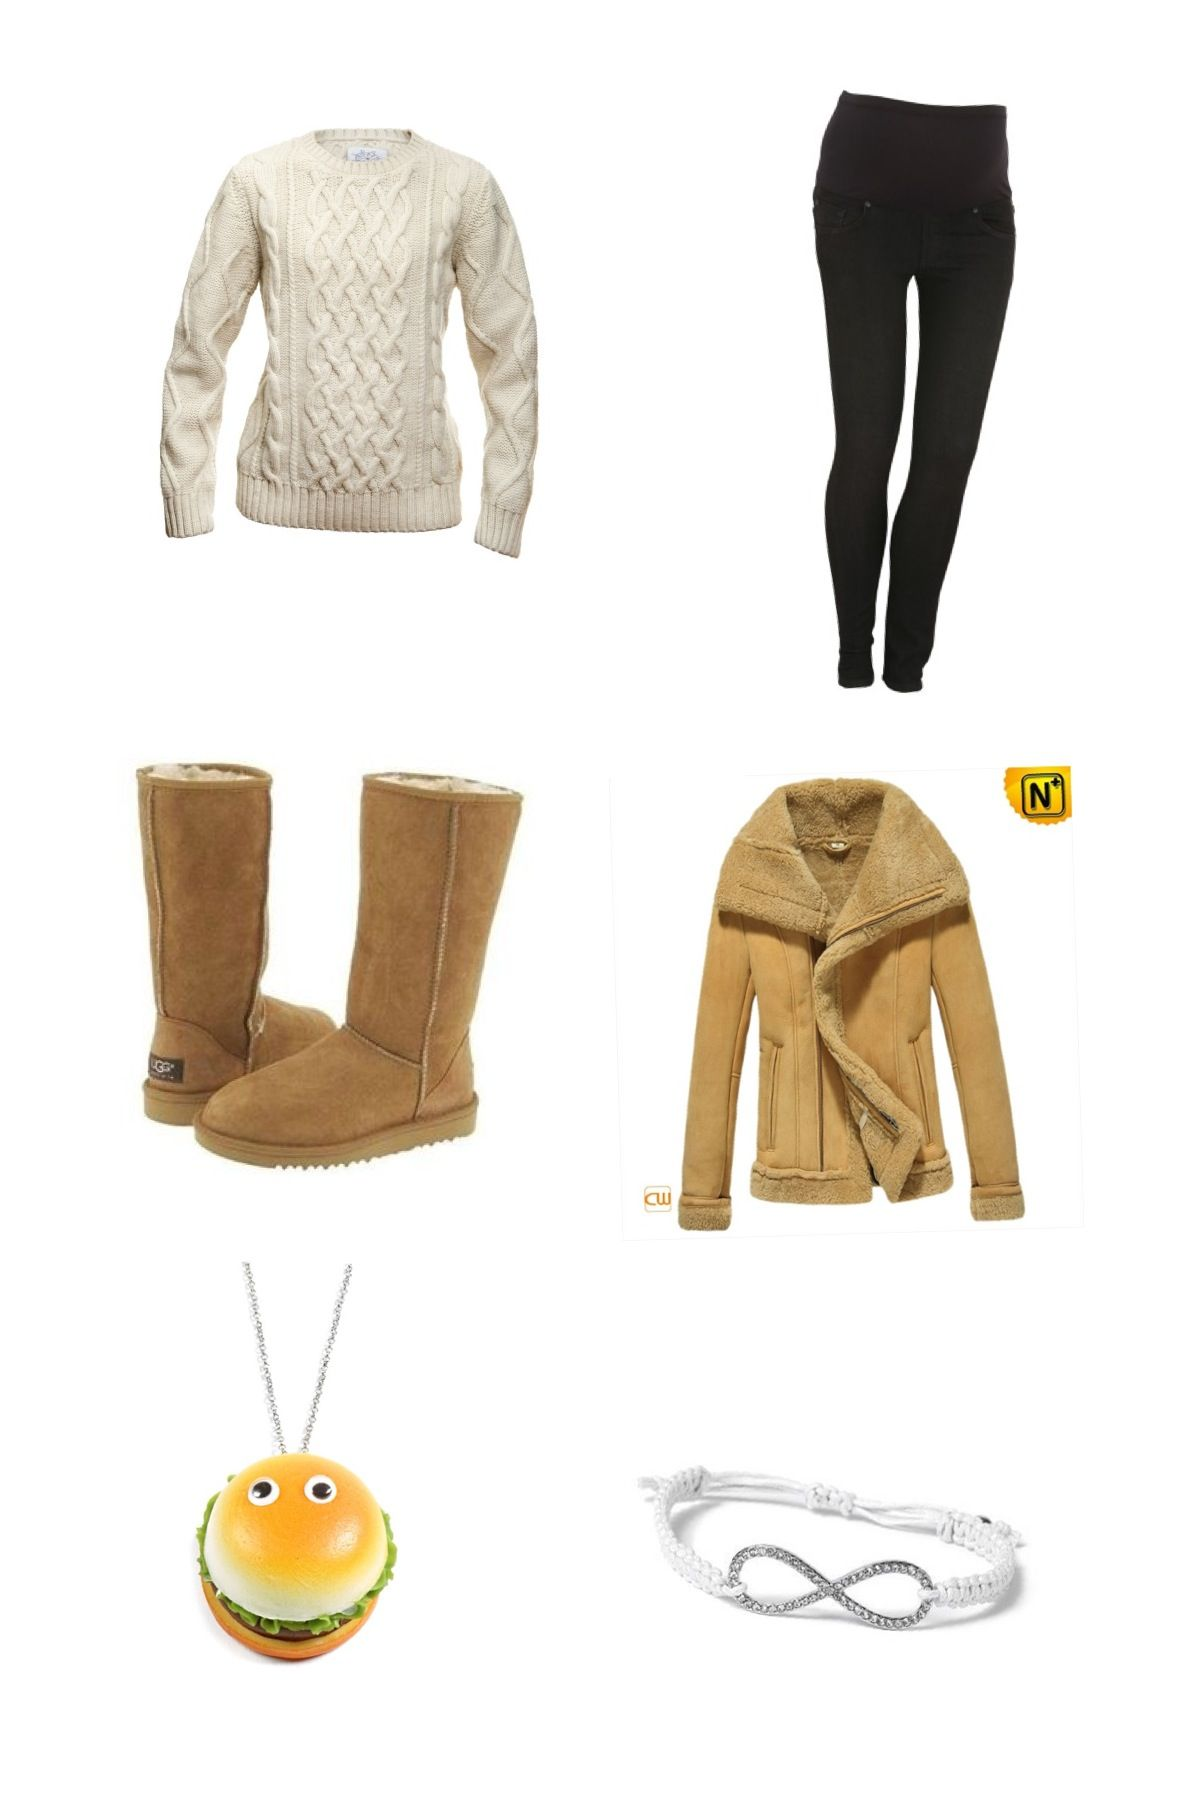 A cute, cozy and stylish outfit for the winter.